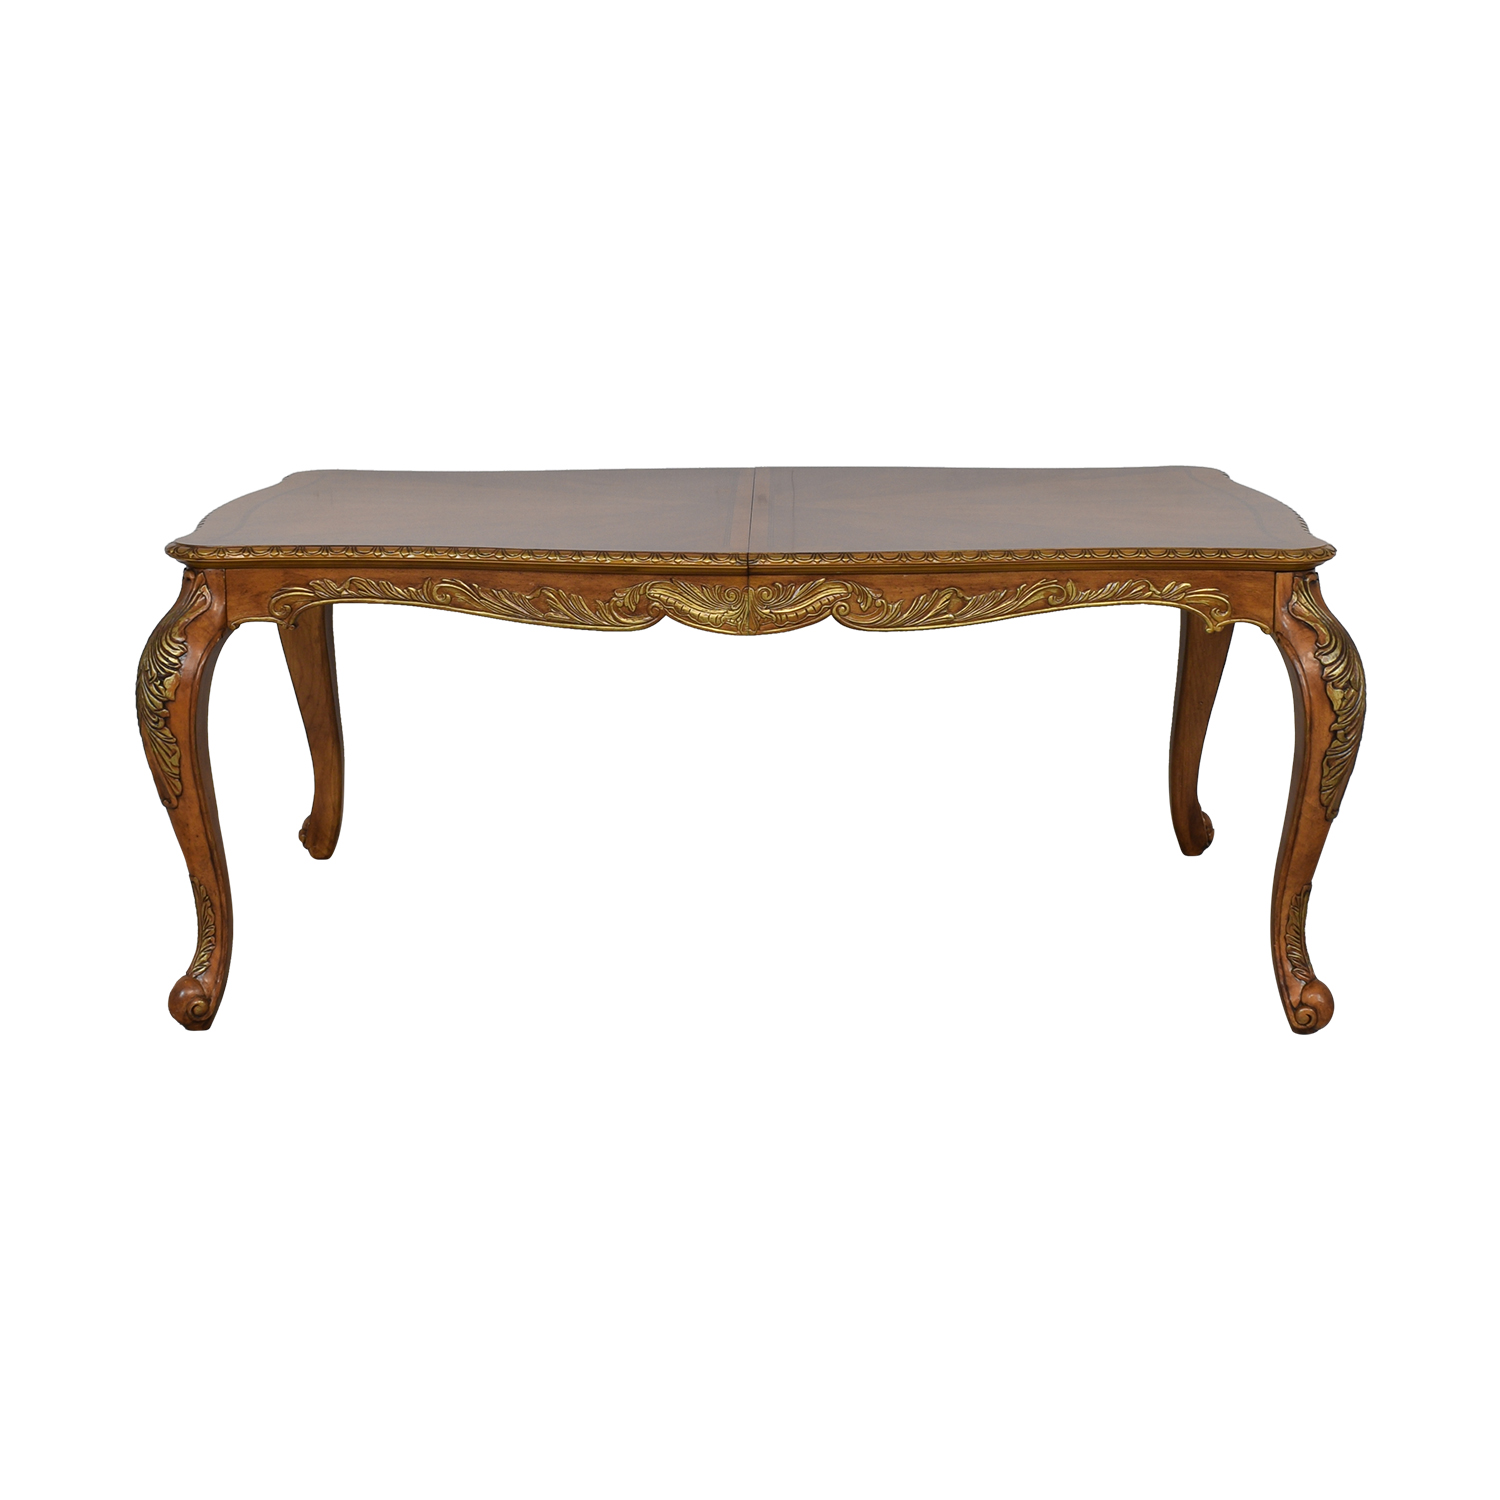 Raymour & Flanigan Raymour & Flanigan Extendable Dining Table ma